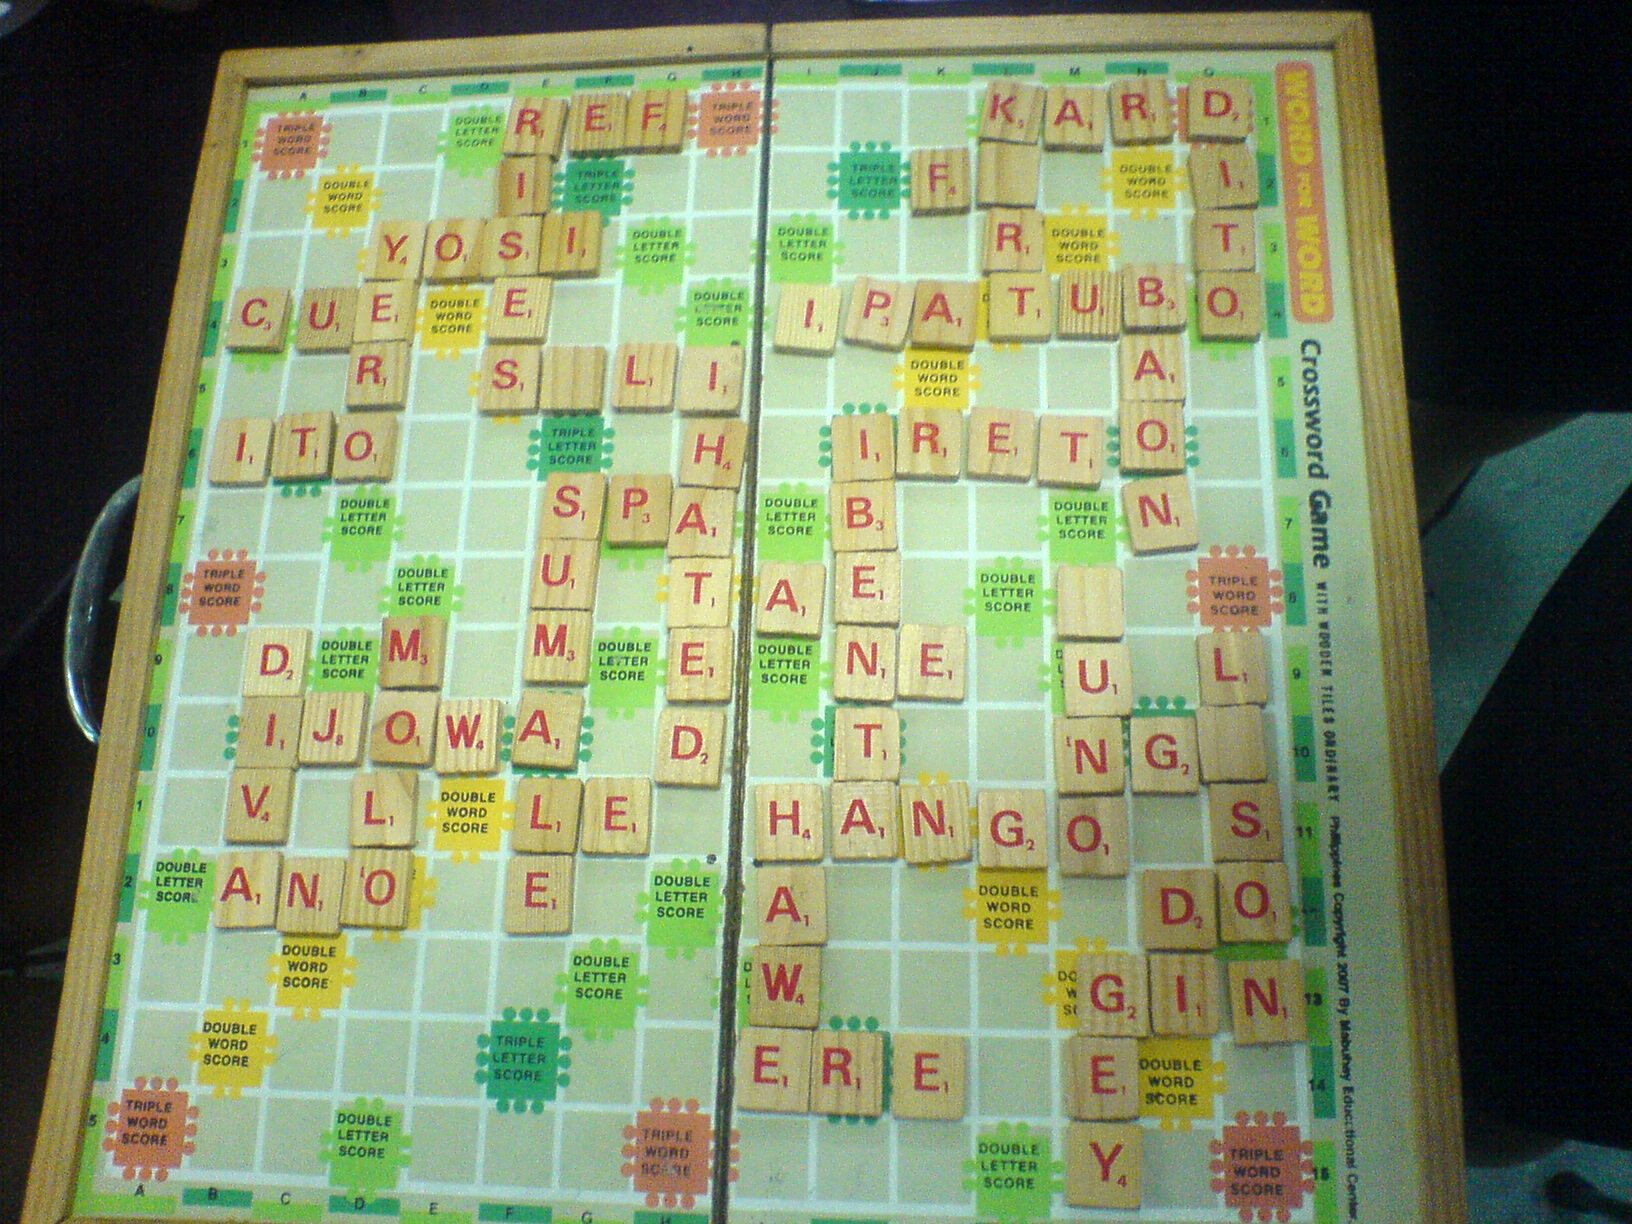 a game of scrabble in tagalog